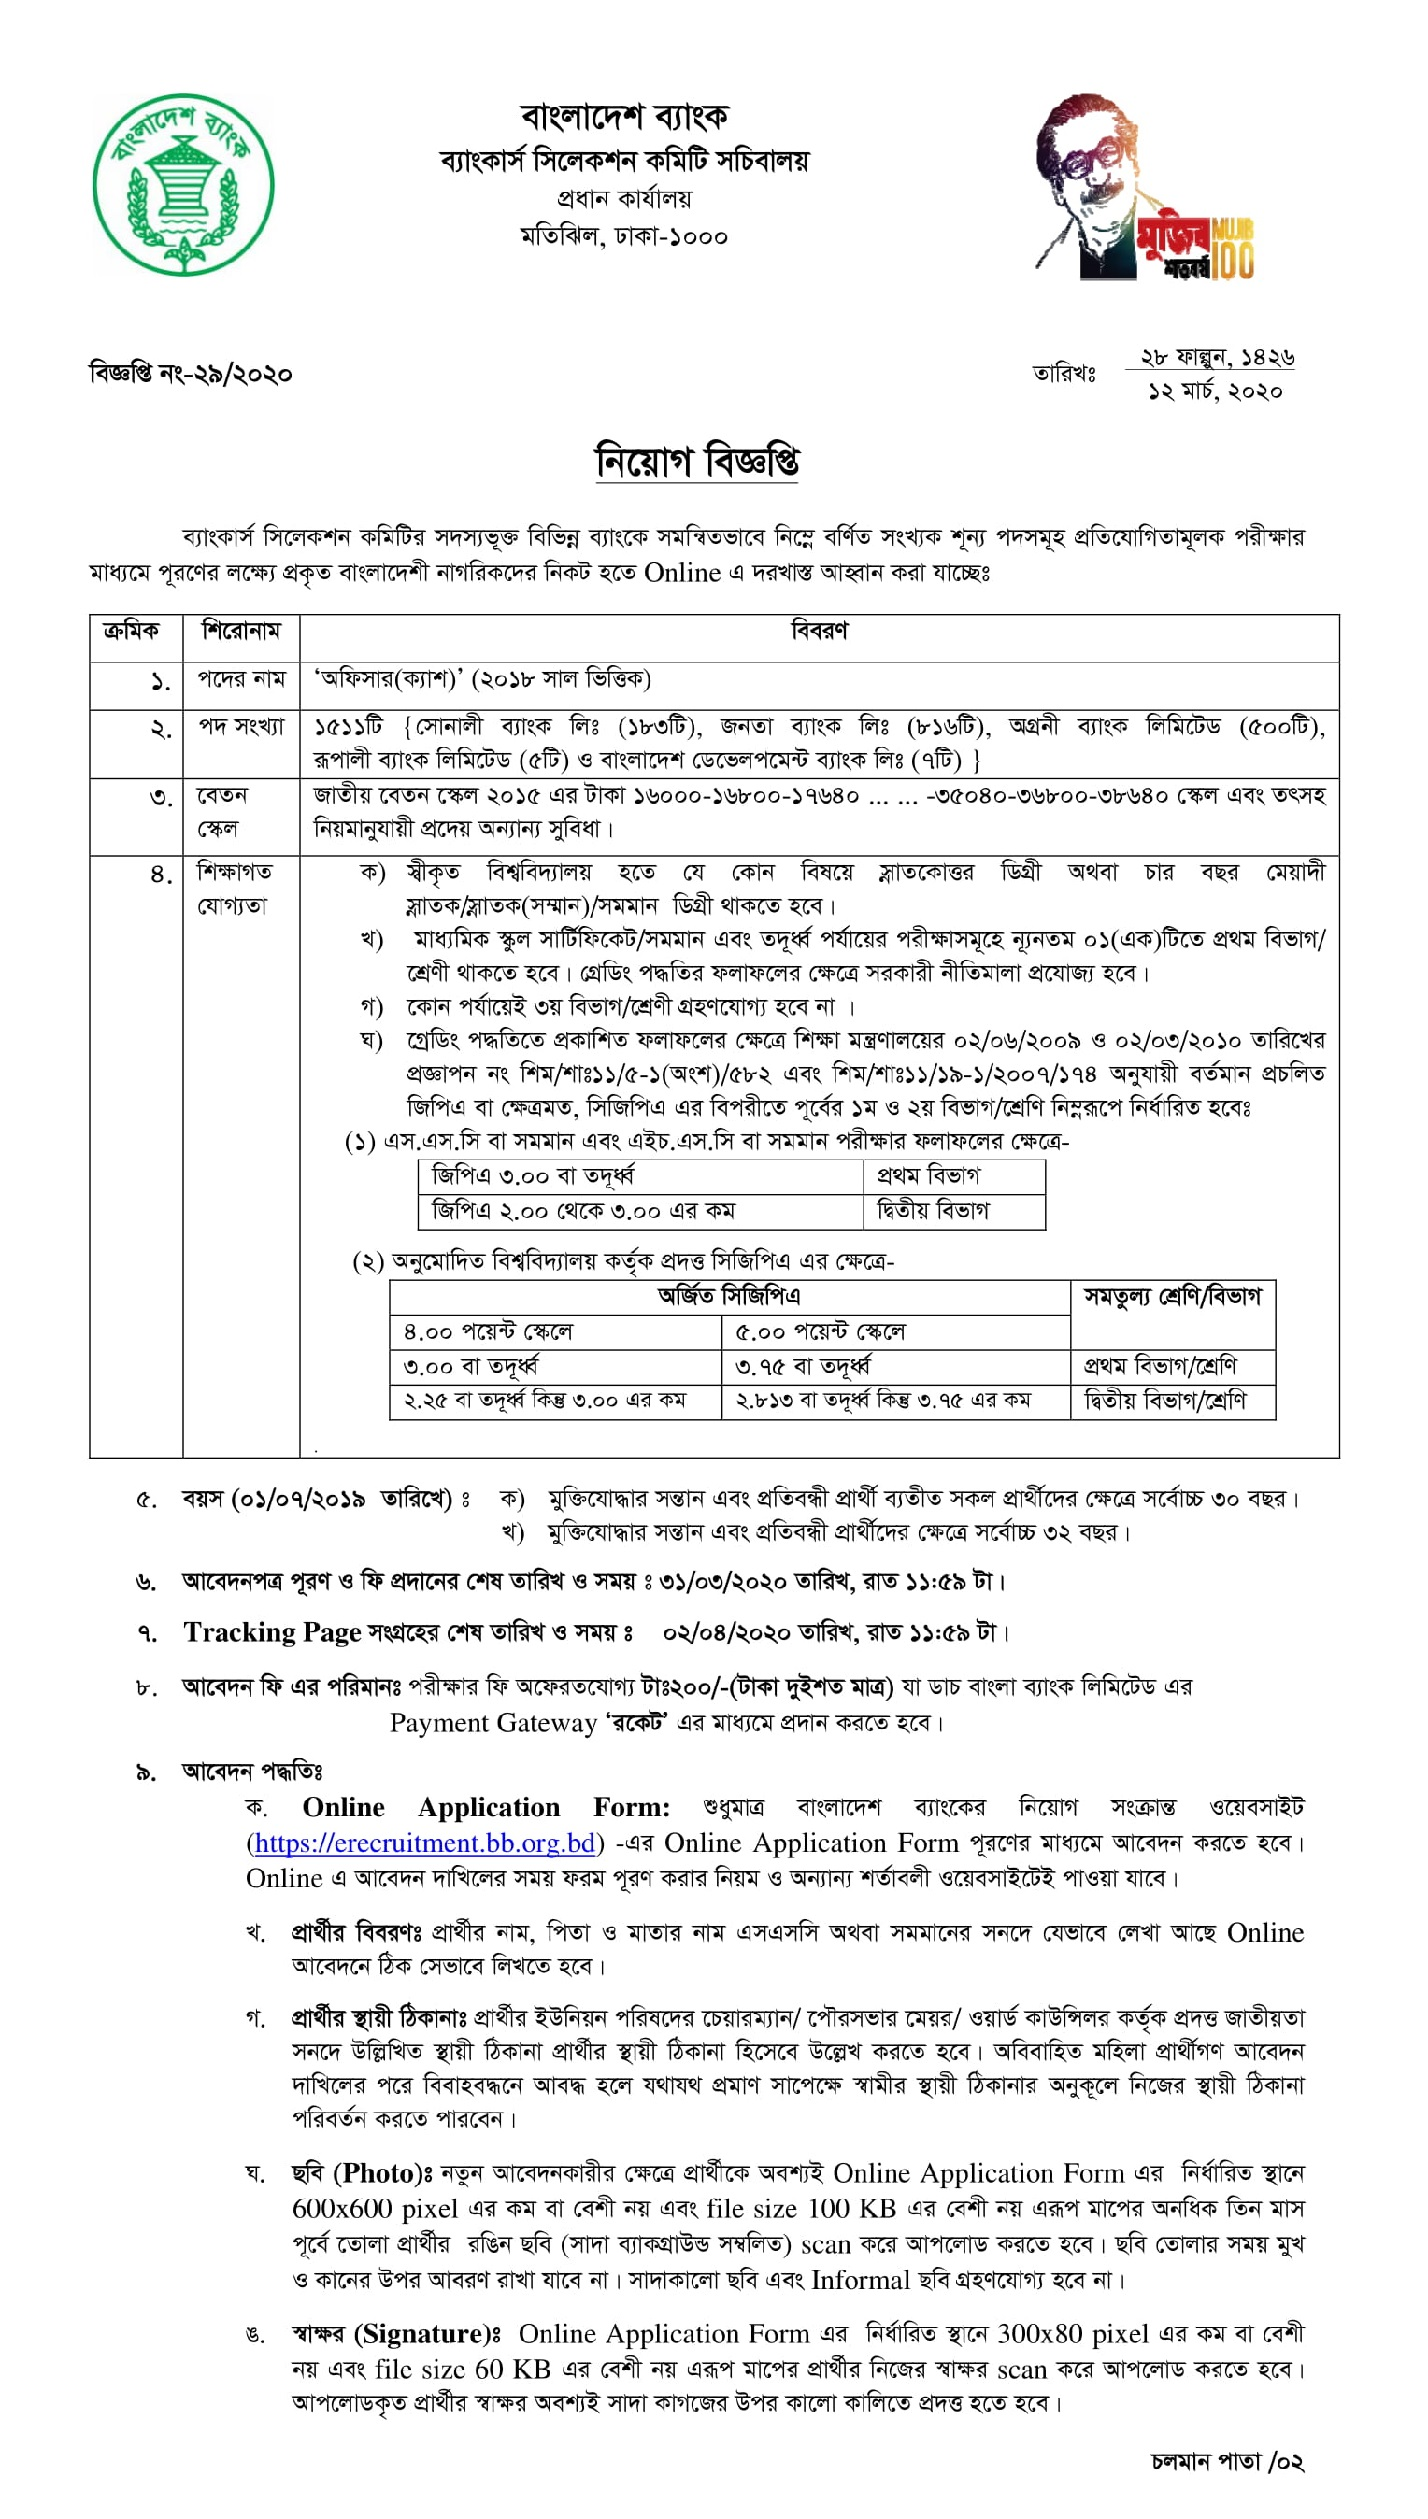 janata bank job online application form